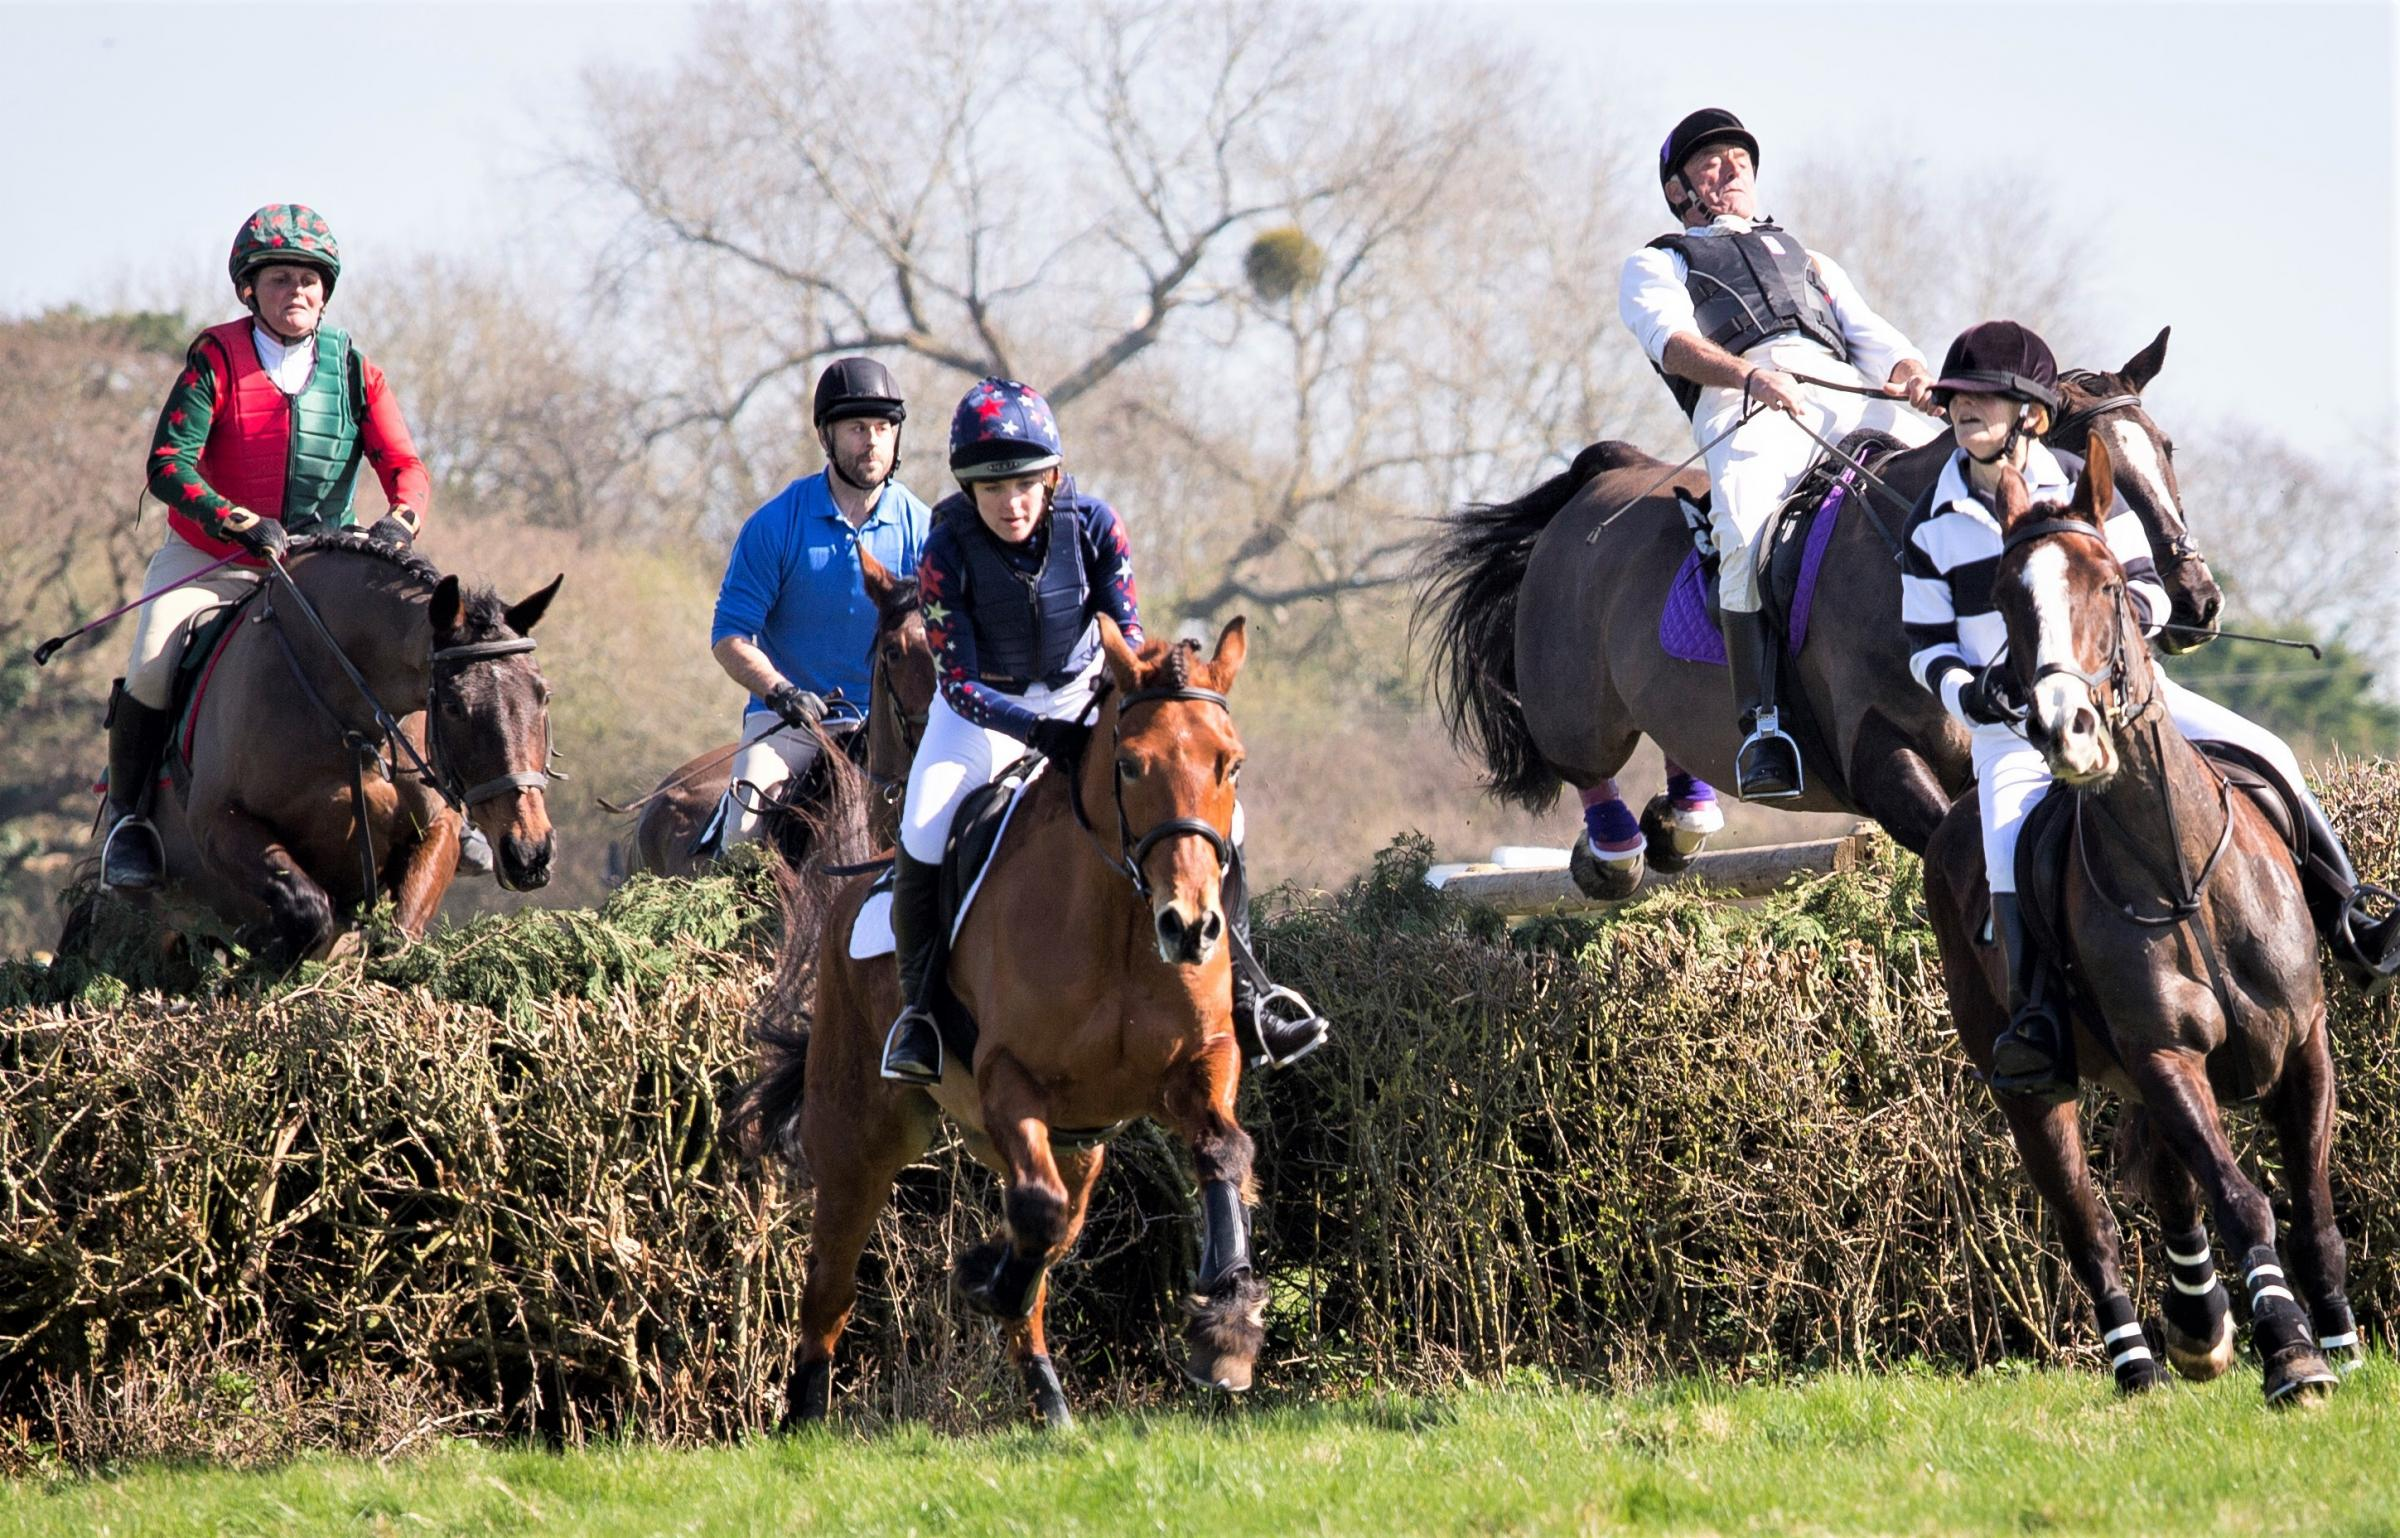 Action from the 2017 IW Grand National at West Ashey Farm.  Photo: Jo Monck